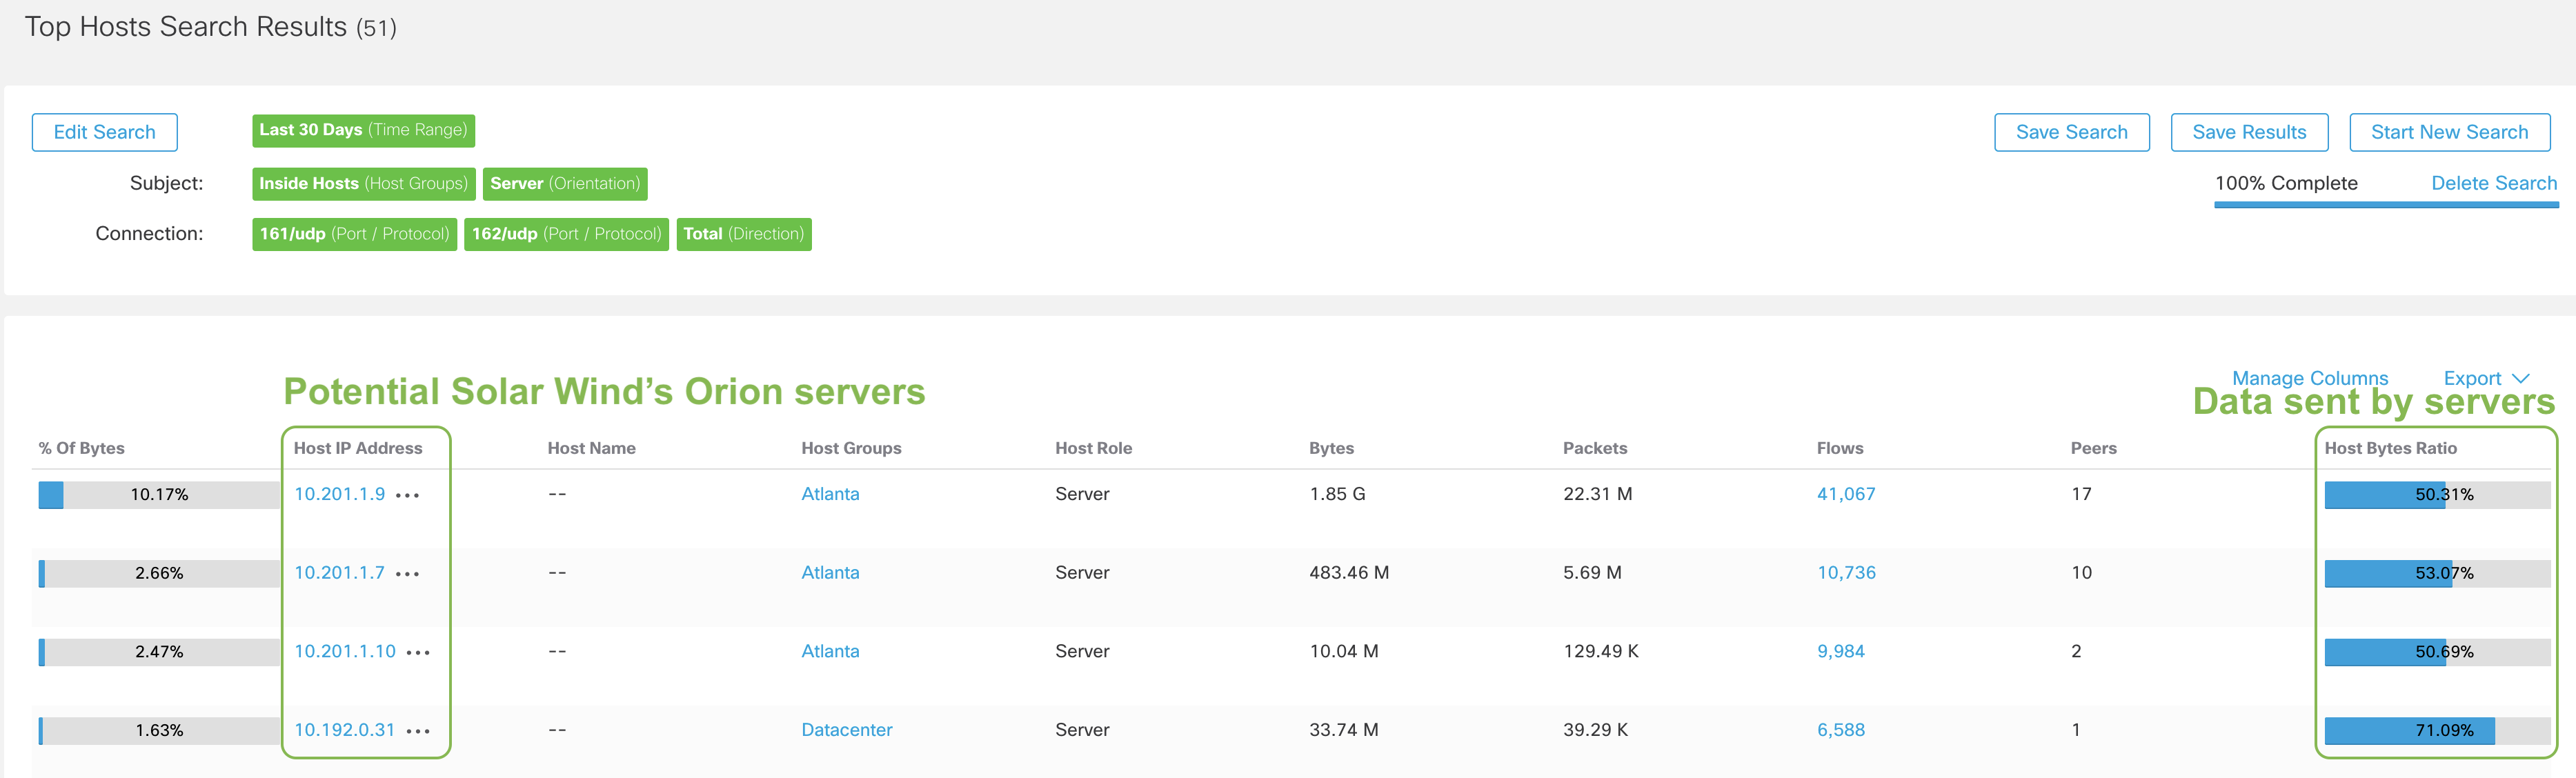 Secure Network Analytics Top Hosts Search that uncovers top SNMP servers in your network.